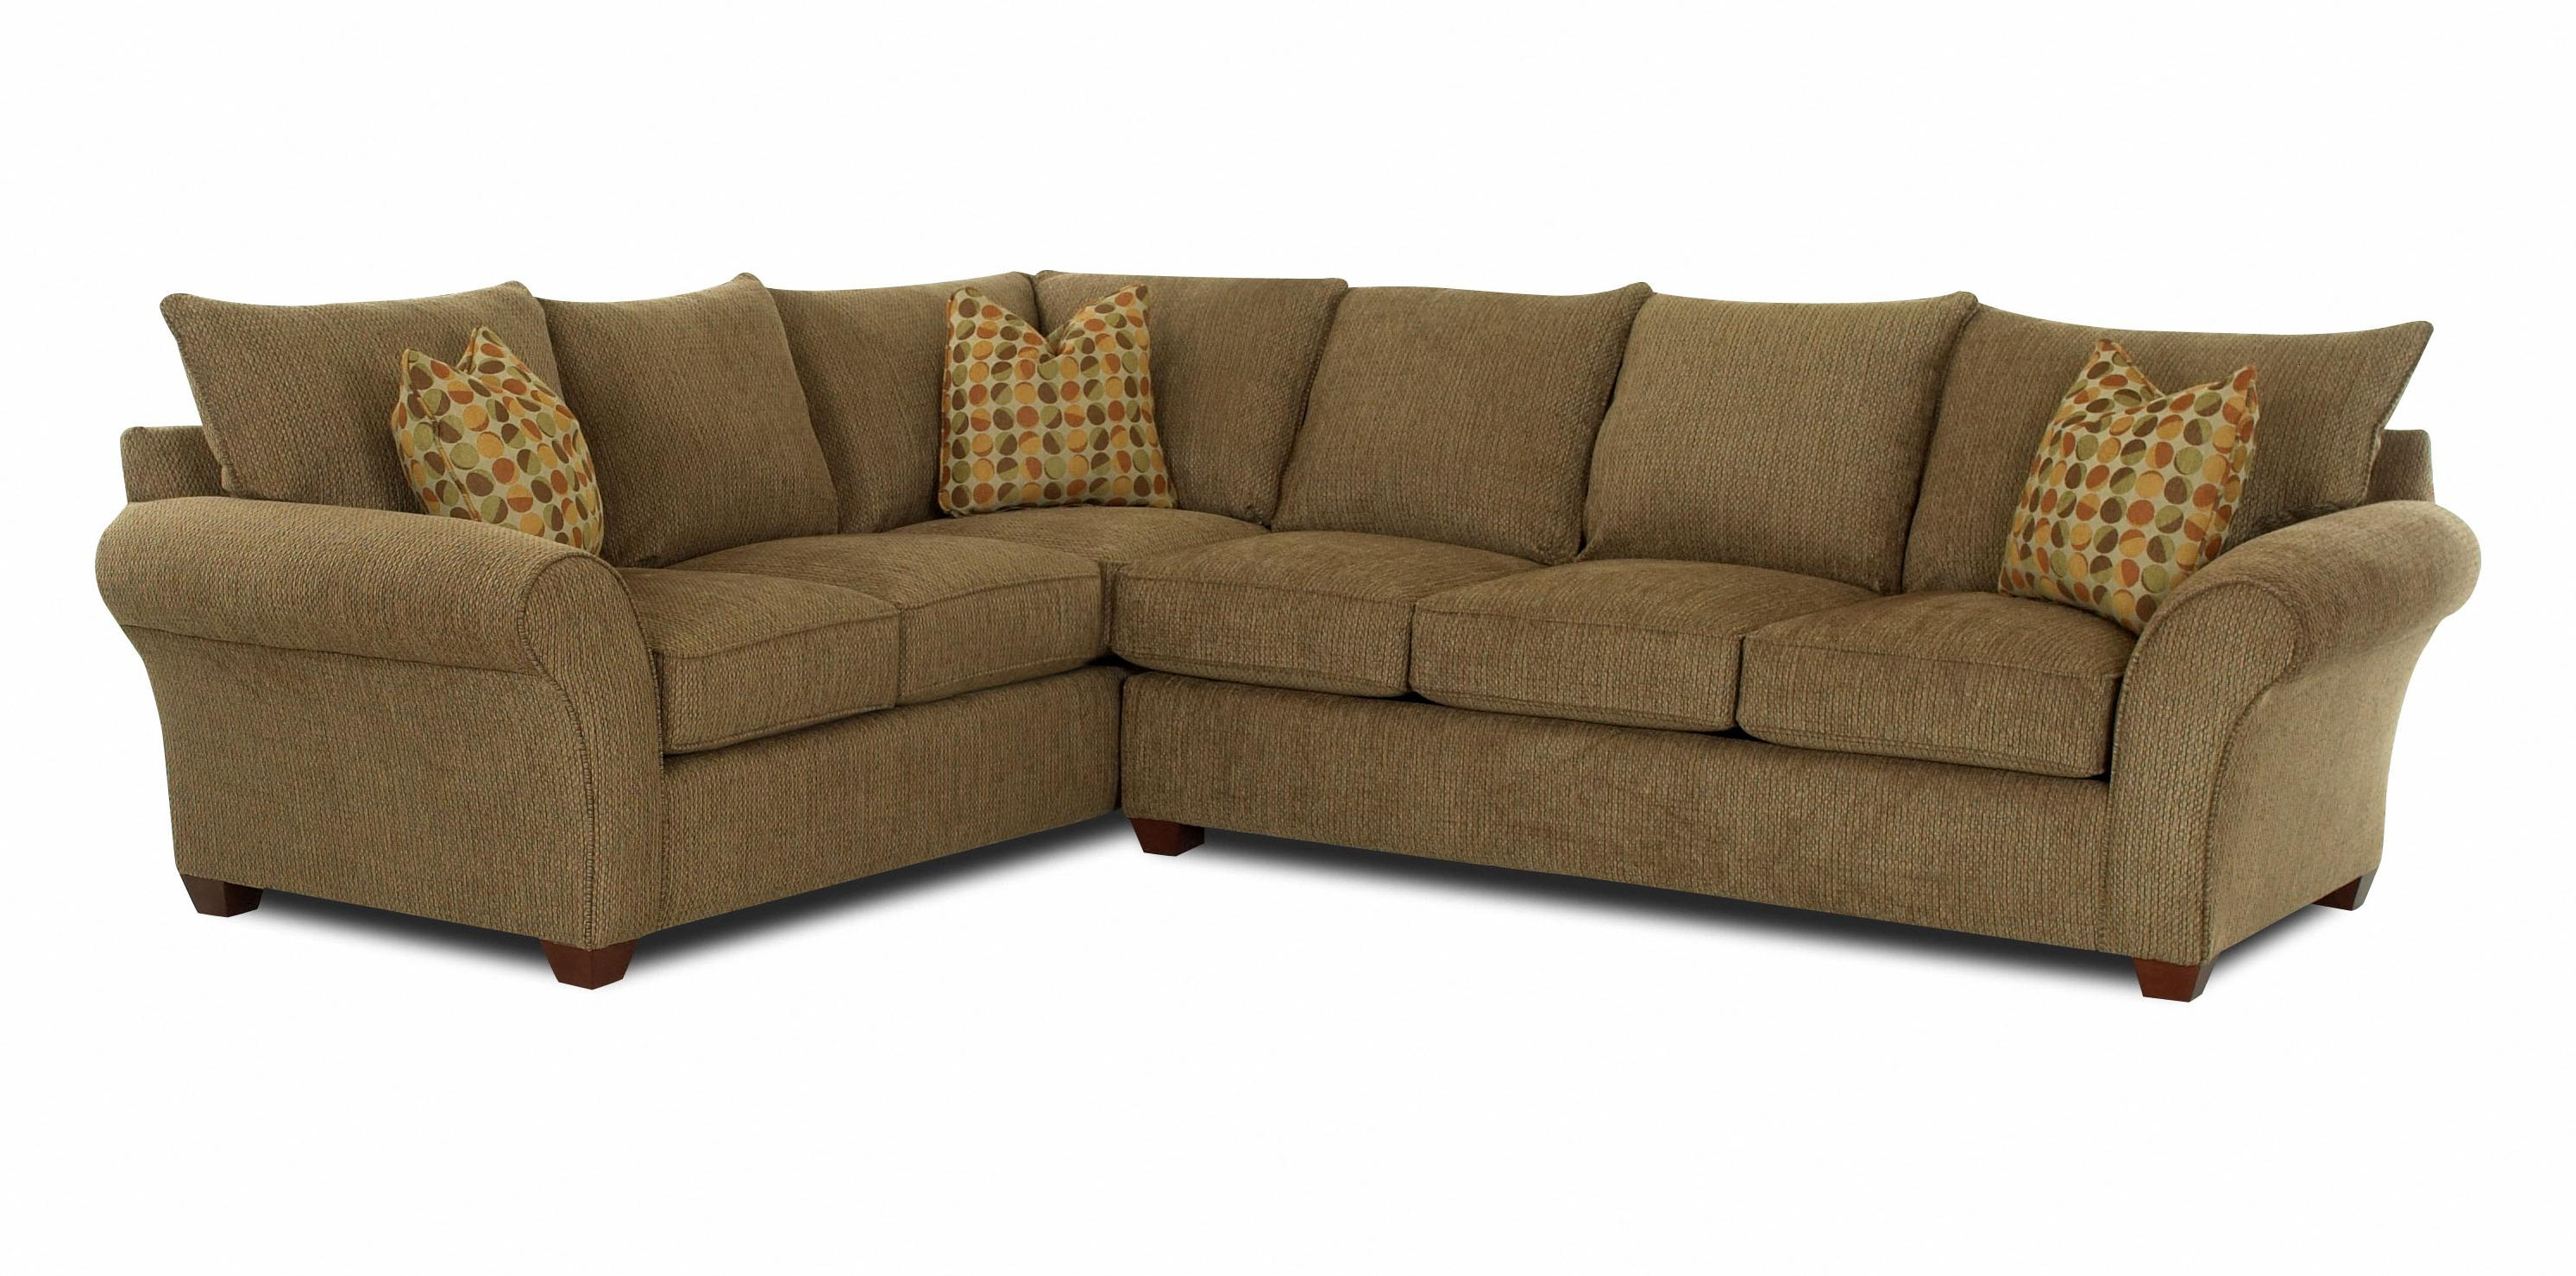 Transitional 2 piece sectional sofa by klaussner wolf for Sectional sofas wolf furniture